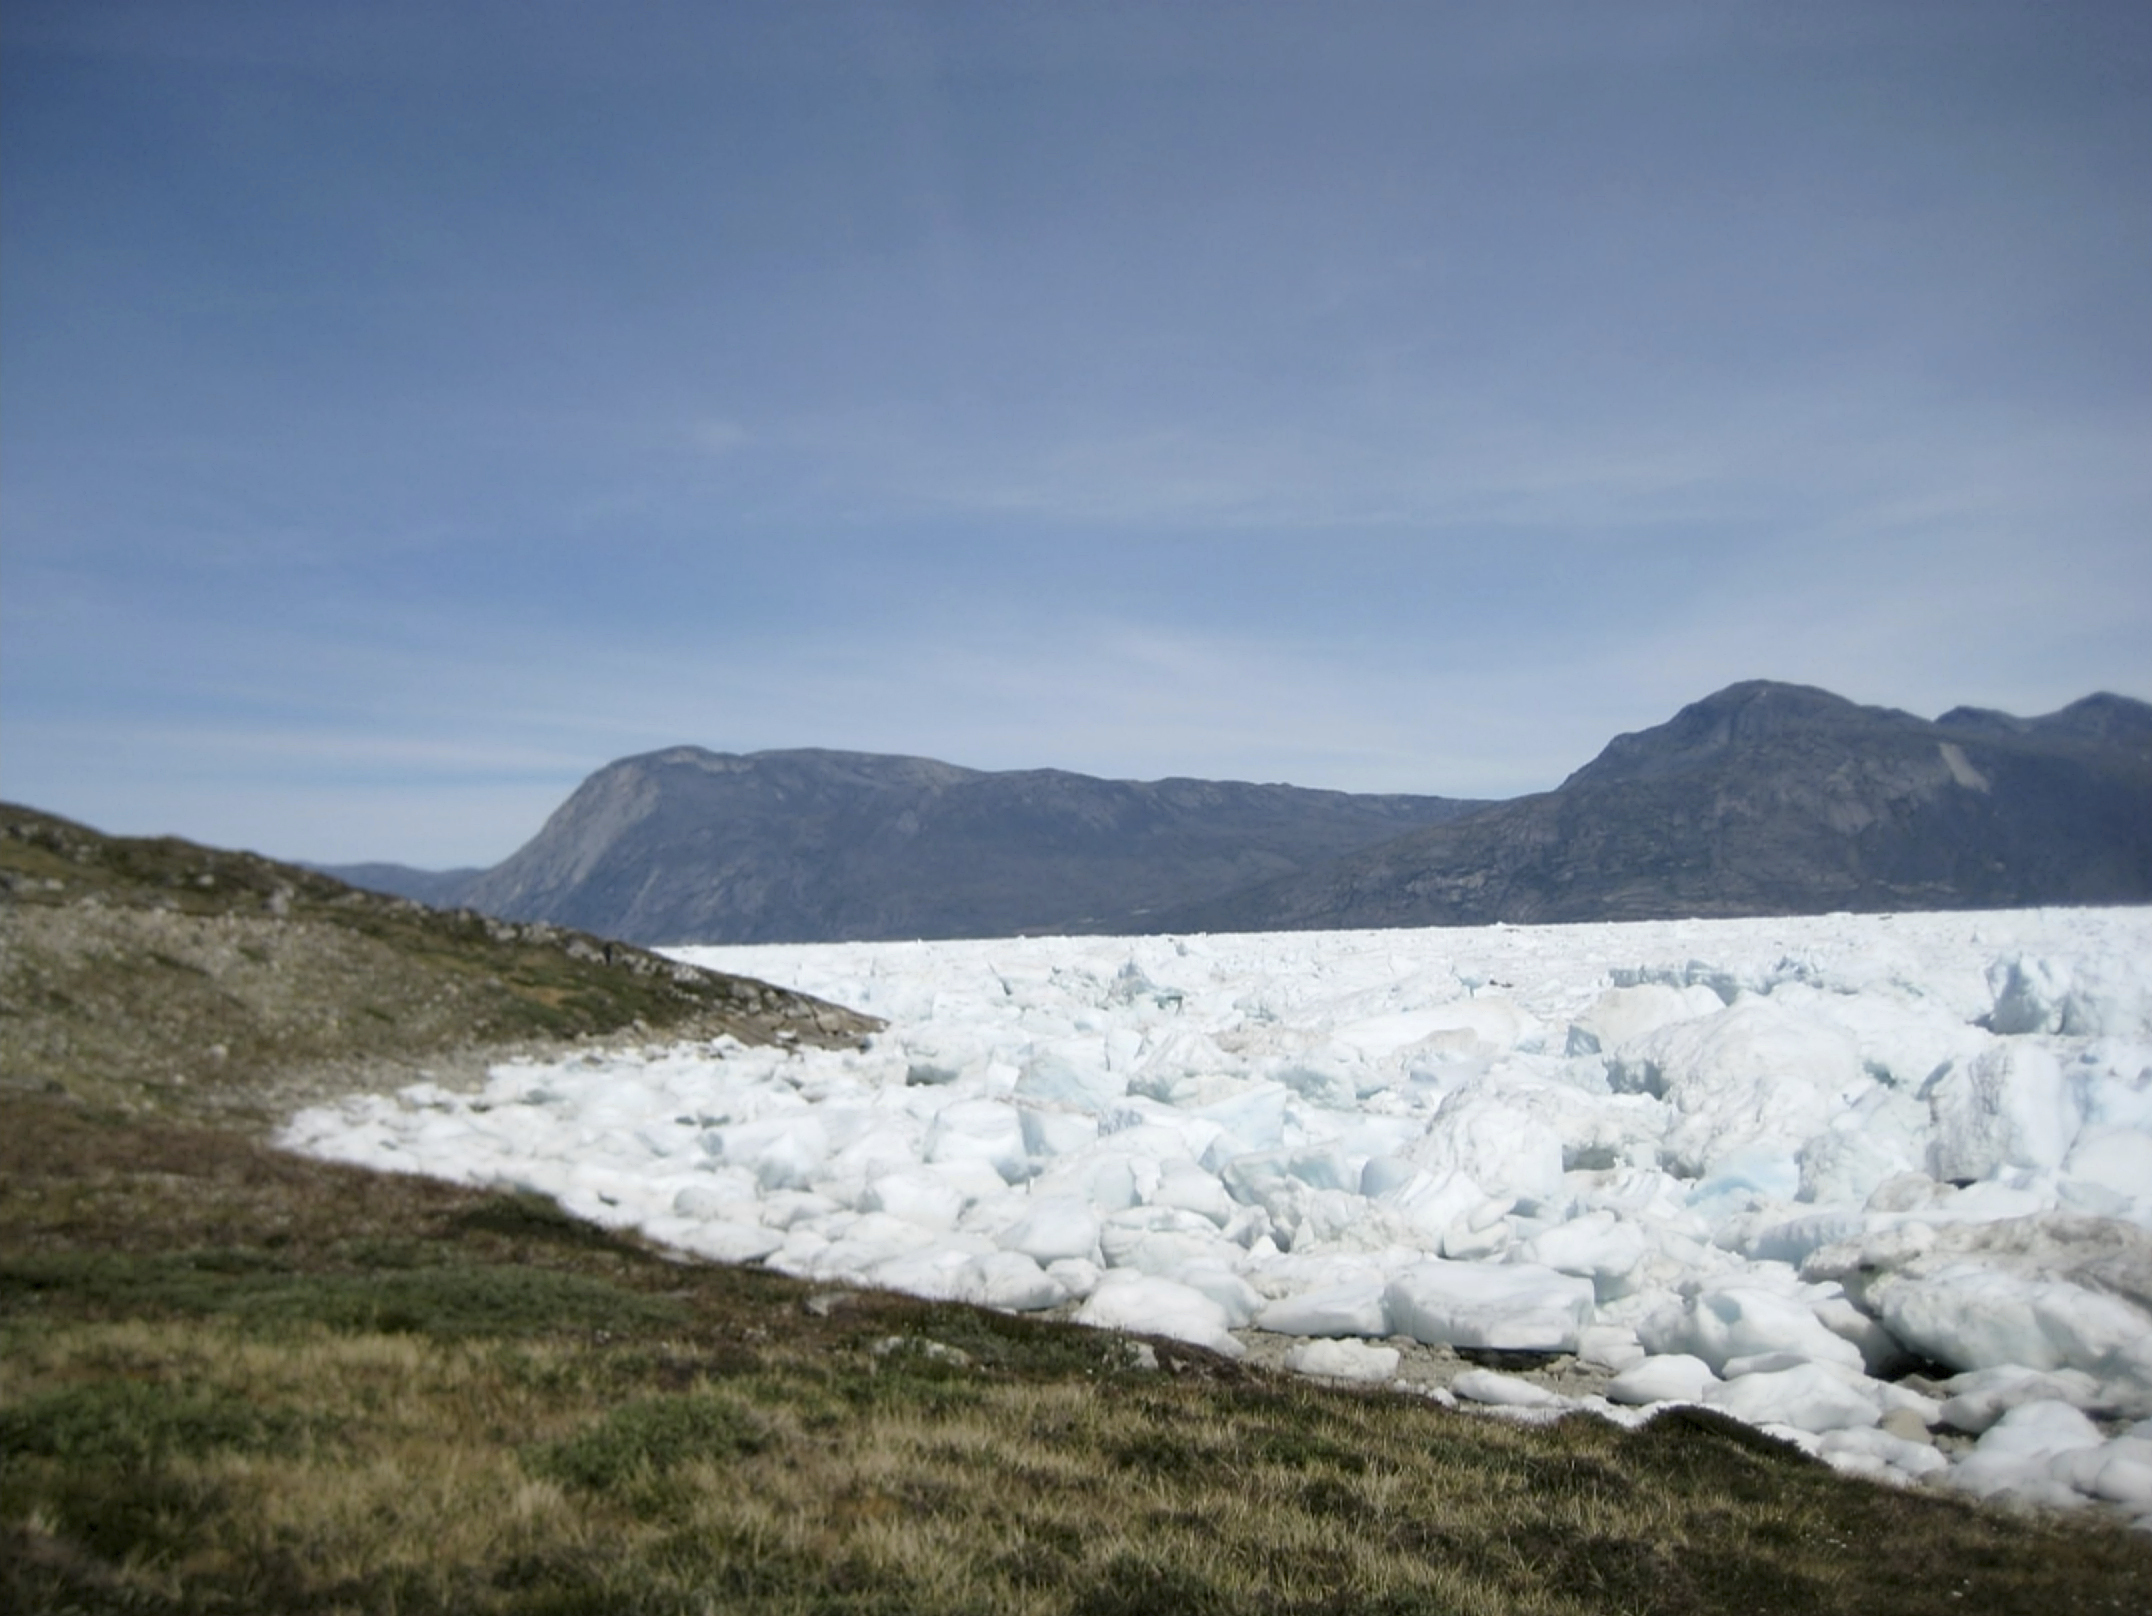 An image taken on June 18, 2019 of the Kangersuneq glacial ice fields in Kapissisillit, Greenland. Milder weather than normal since the start of summer, led to the UN's weather agency voicing concern that the hot air which produced the recent extreme heat wave in Europe could be headed toward Greenland where it could contribute to increased melting of ice.